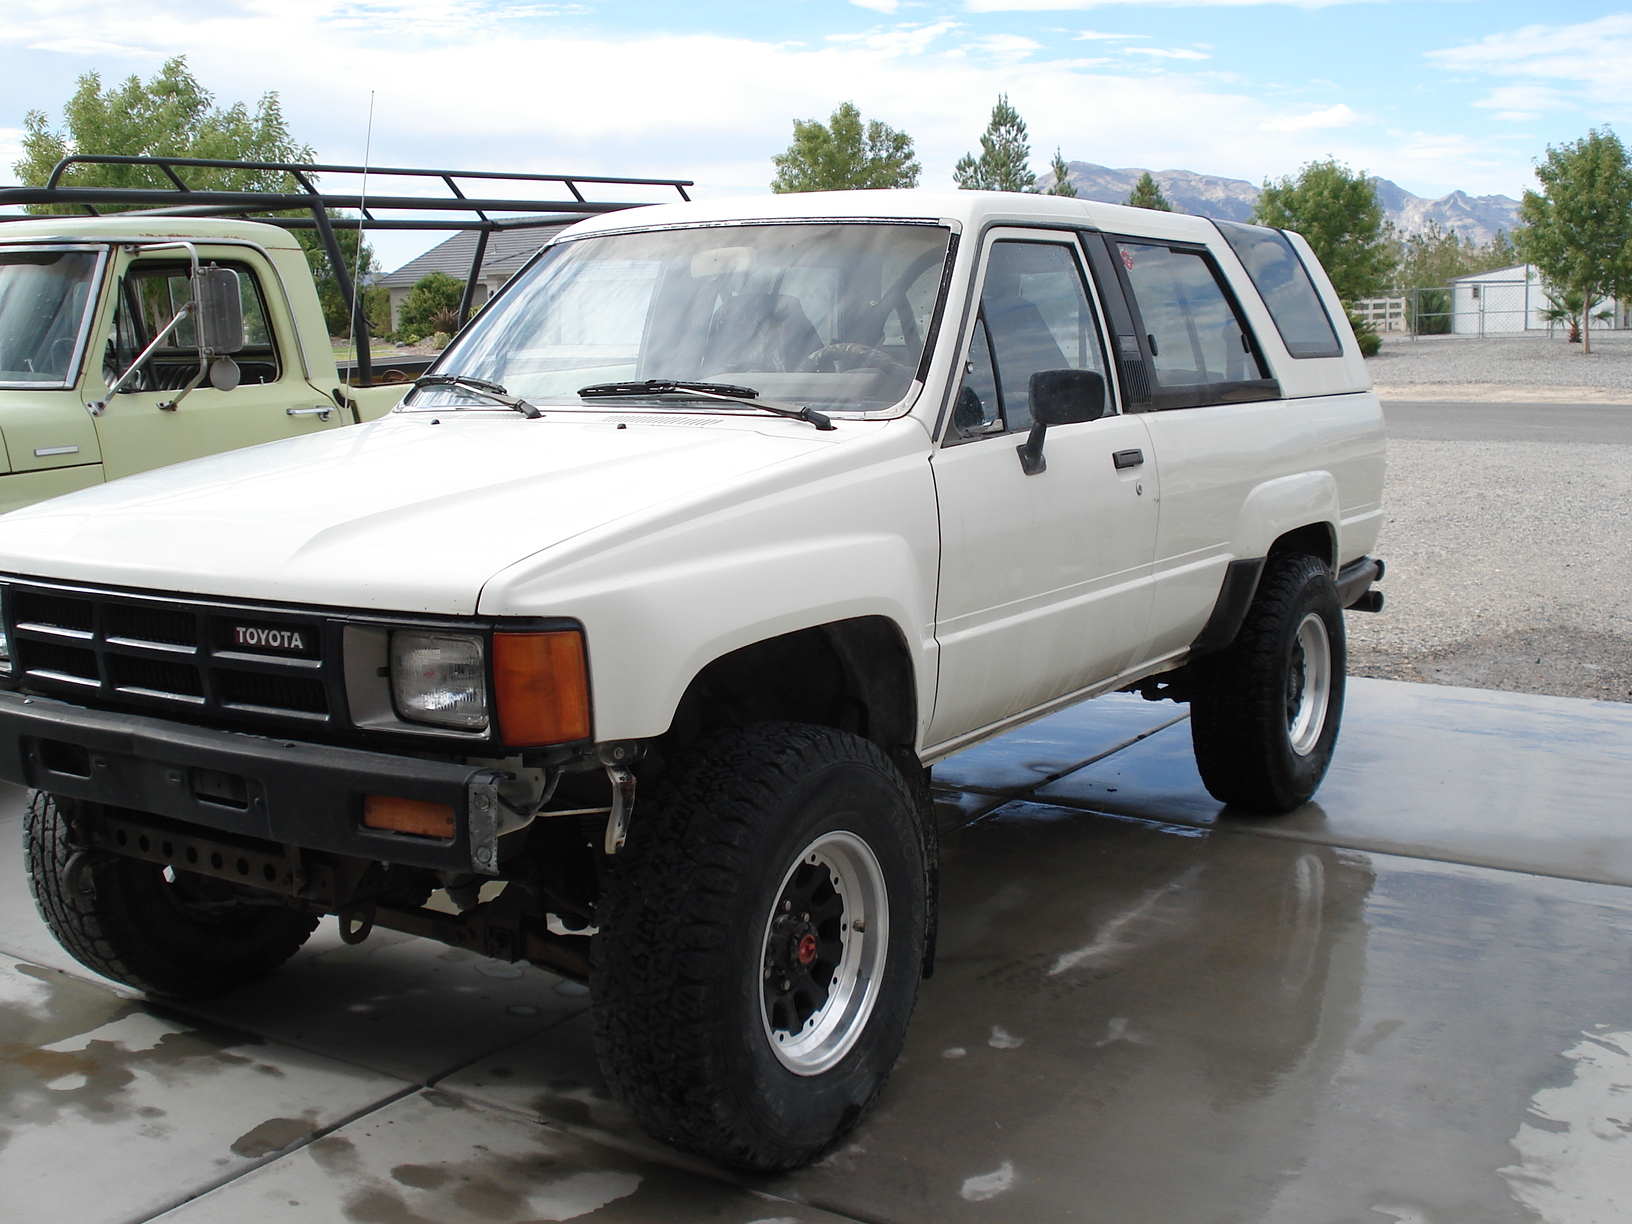 Toyota 4Runner Forum >> 1986 Toyota 4Runner (Nevada) - Classified Ads -Buy and ...